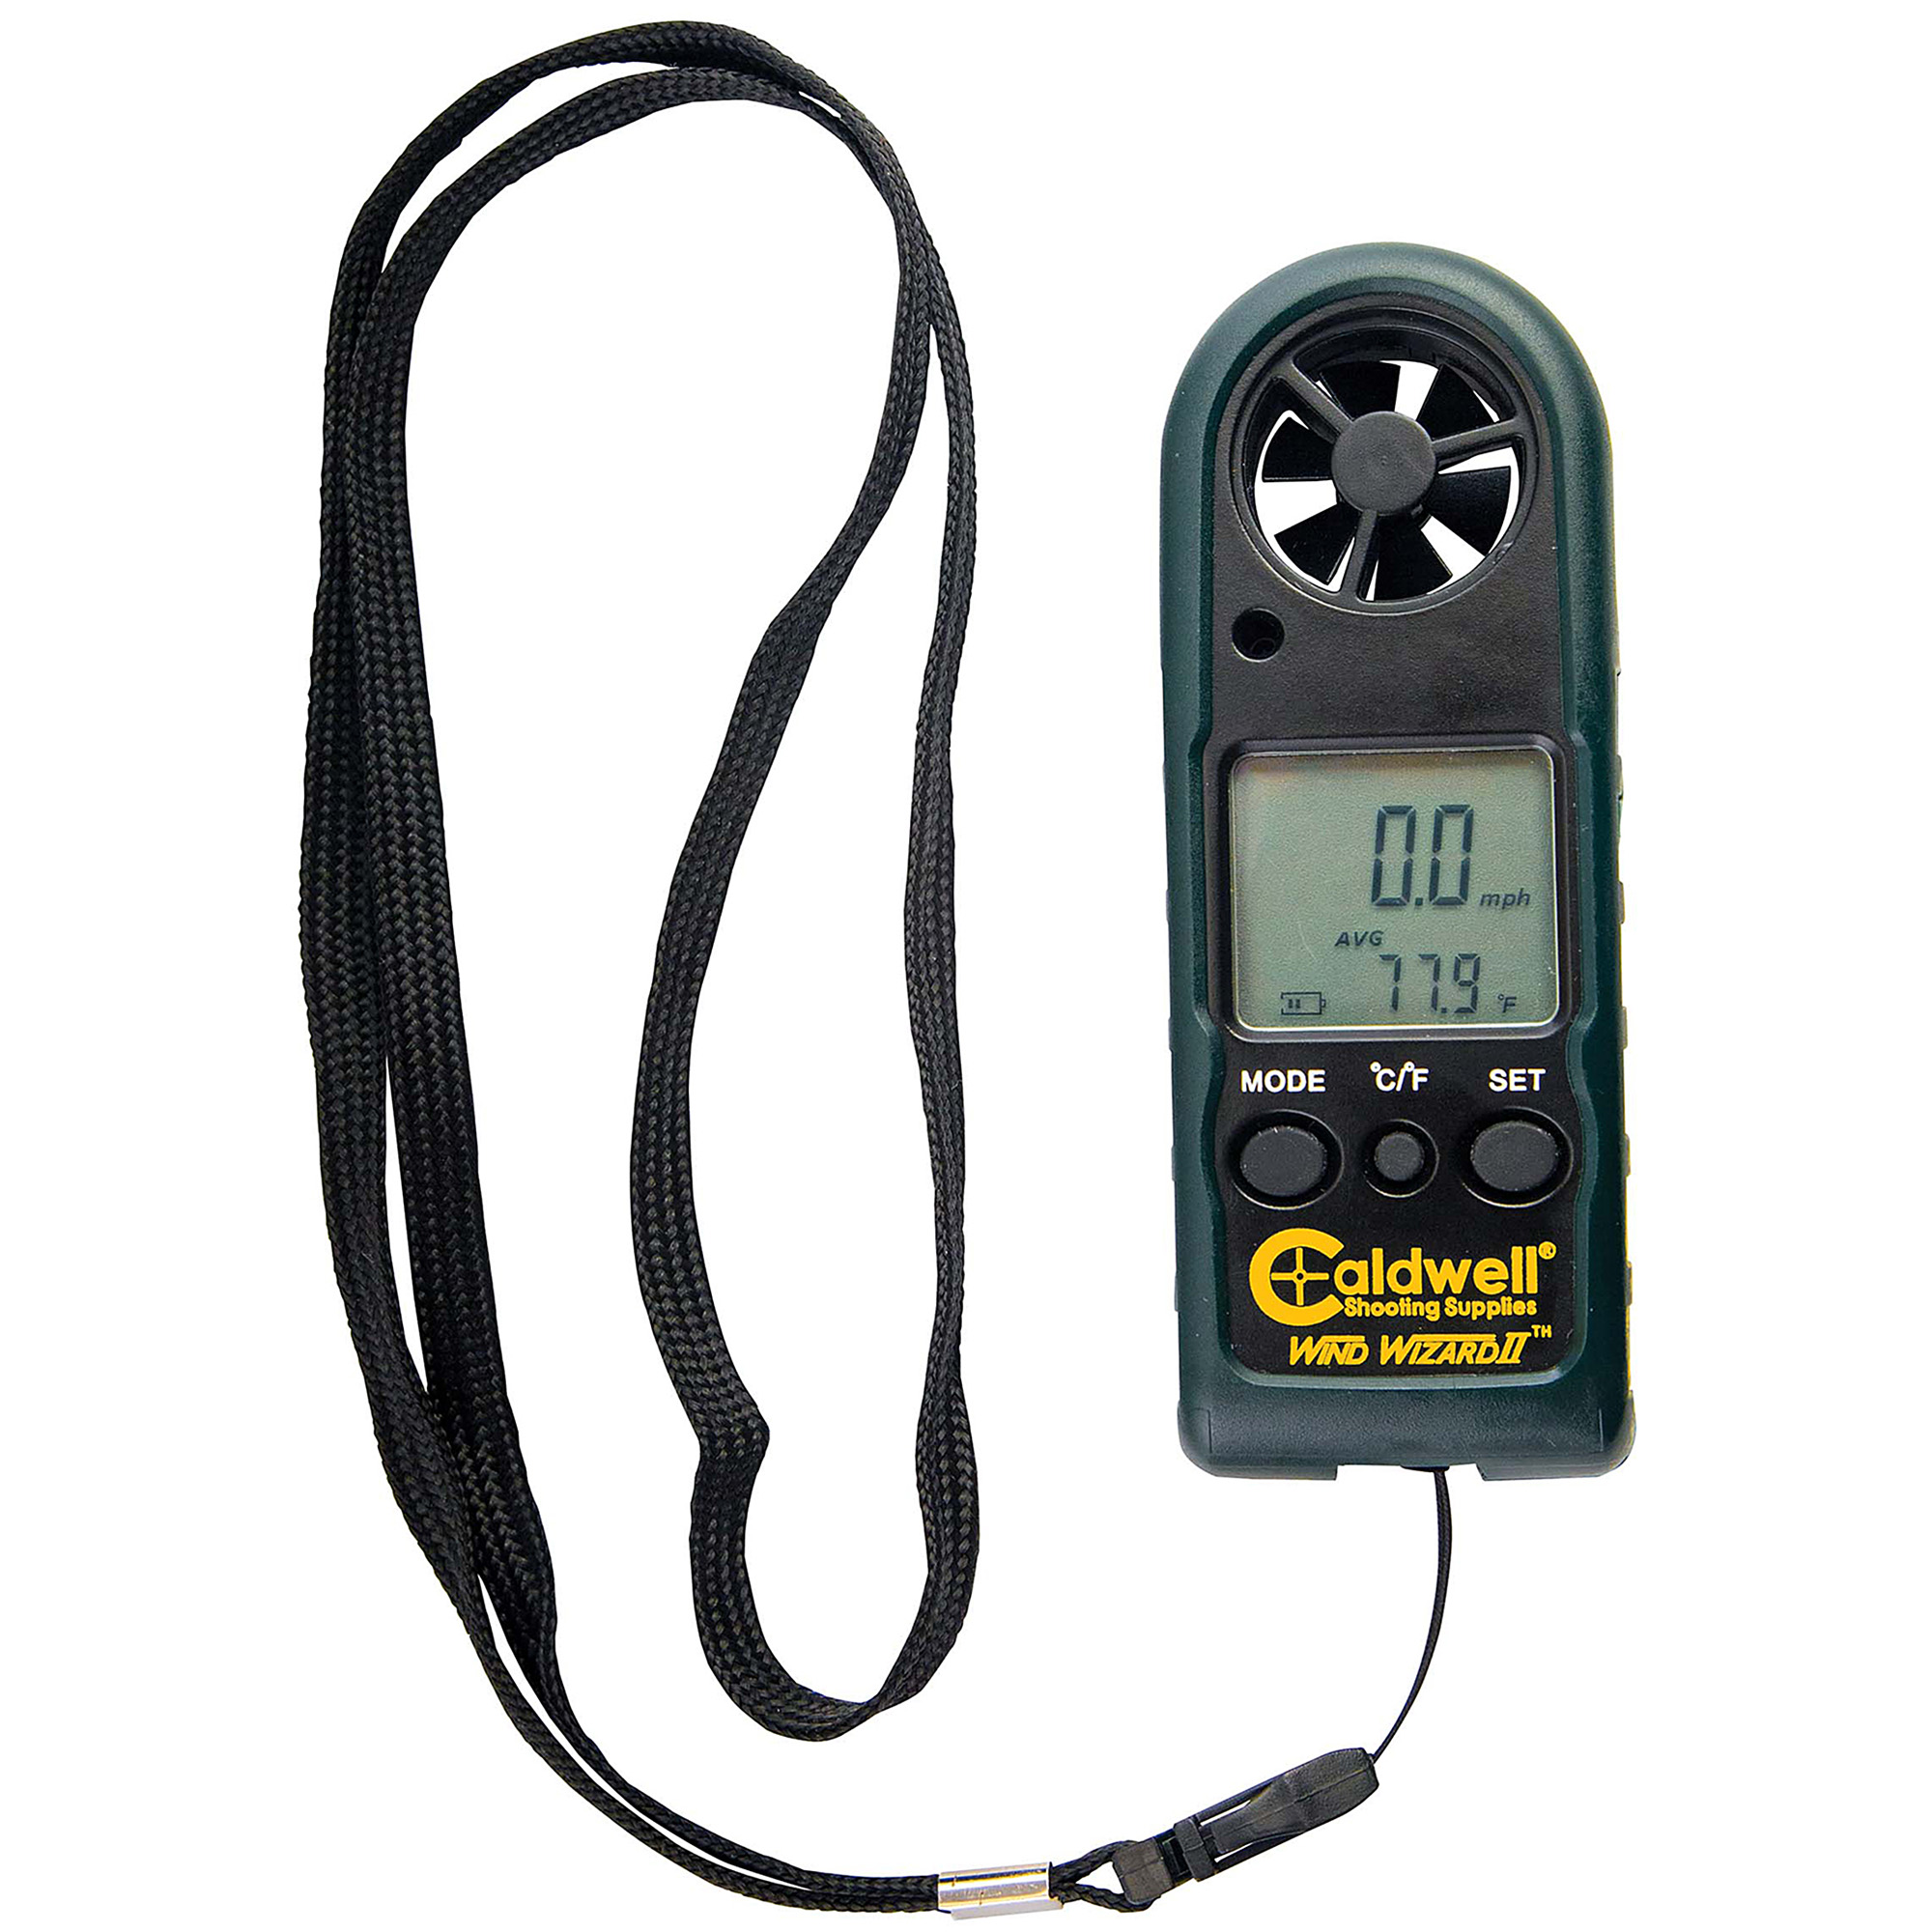 """The Caldwell(R) Wind Wizard II has been redesigned to be the best value wind meter on the market and an ideal tool for indicating wind speed. Knowing wind speed gives the shooter the ability to judge shot placement in varying wind conditions. Both compact and portable"""" this wind meter reads wind and temperature in various units of measure. The non-slip rubber sleeve protects the unit and ensures it's easy to grip even with gloved hands. Operates on one CR2032 battery (included)."""